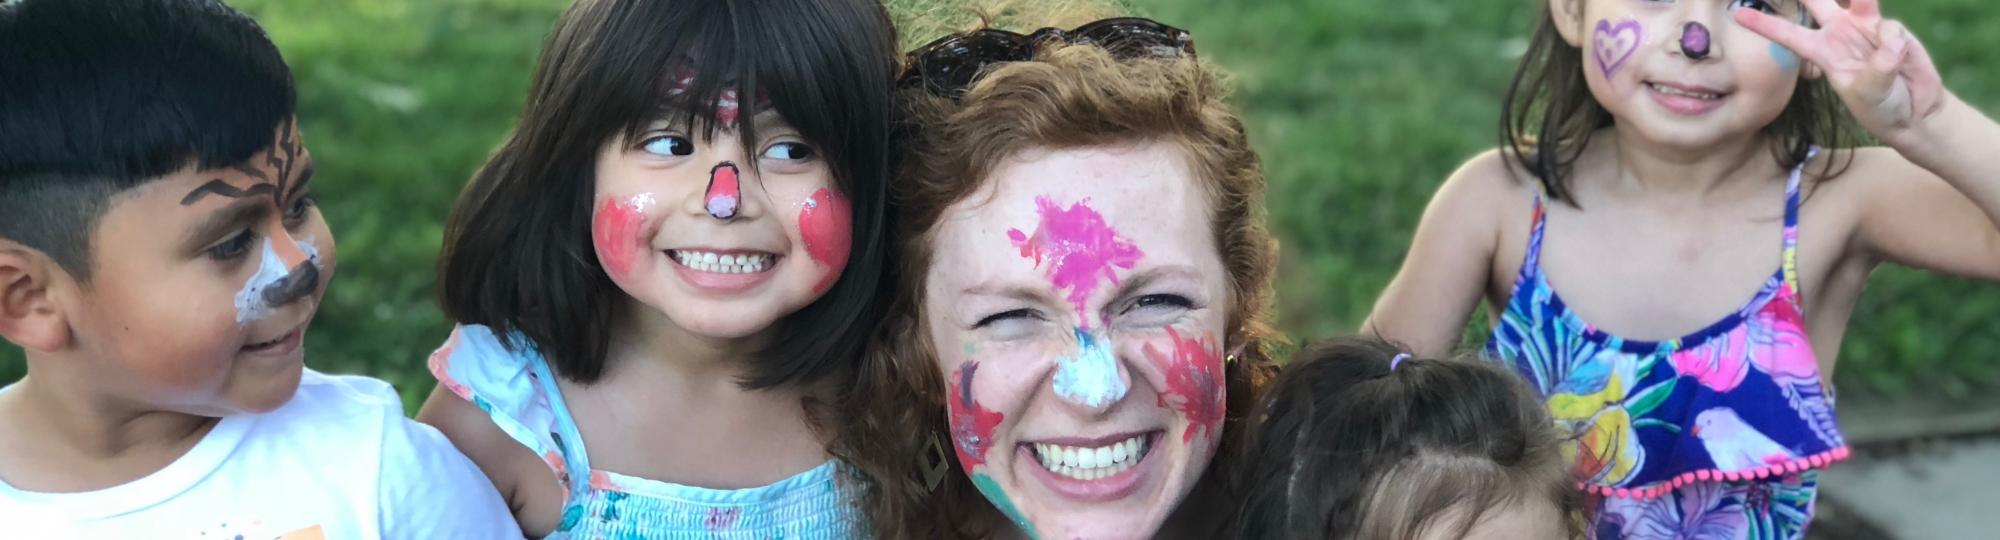 Smiling children and young woman wearing colorful face paint